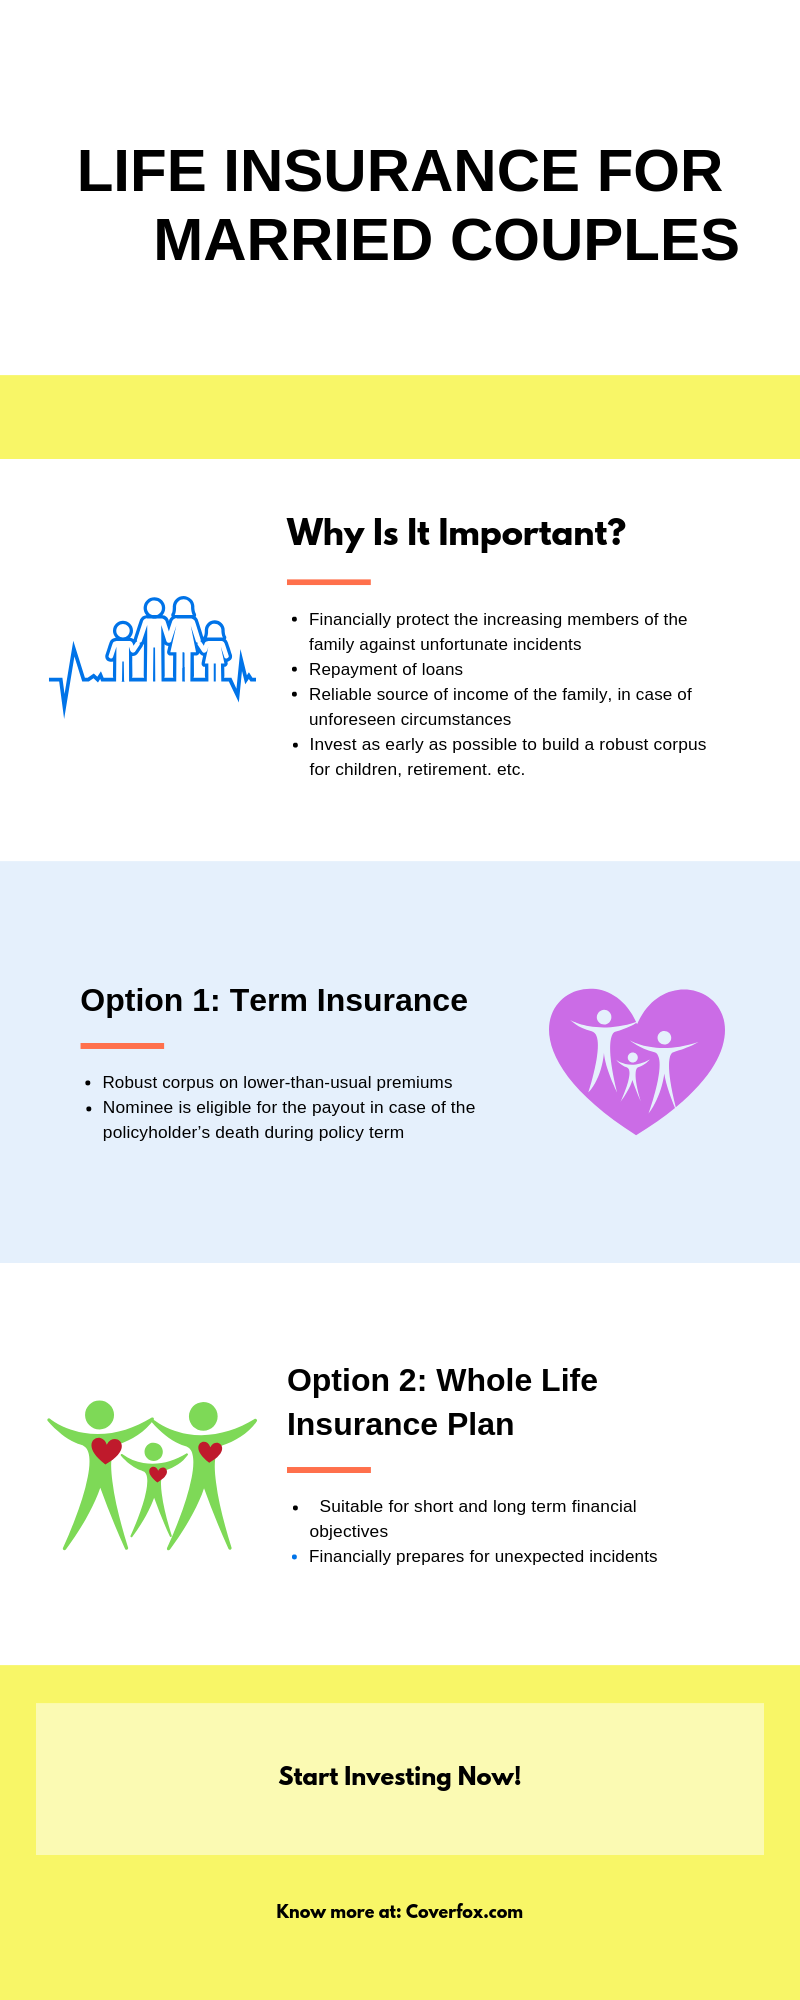 Importance of Life Insurance For Married Couples